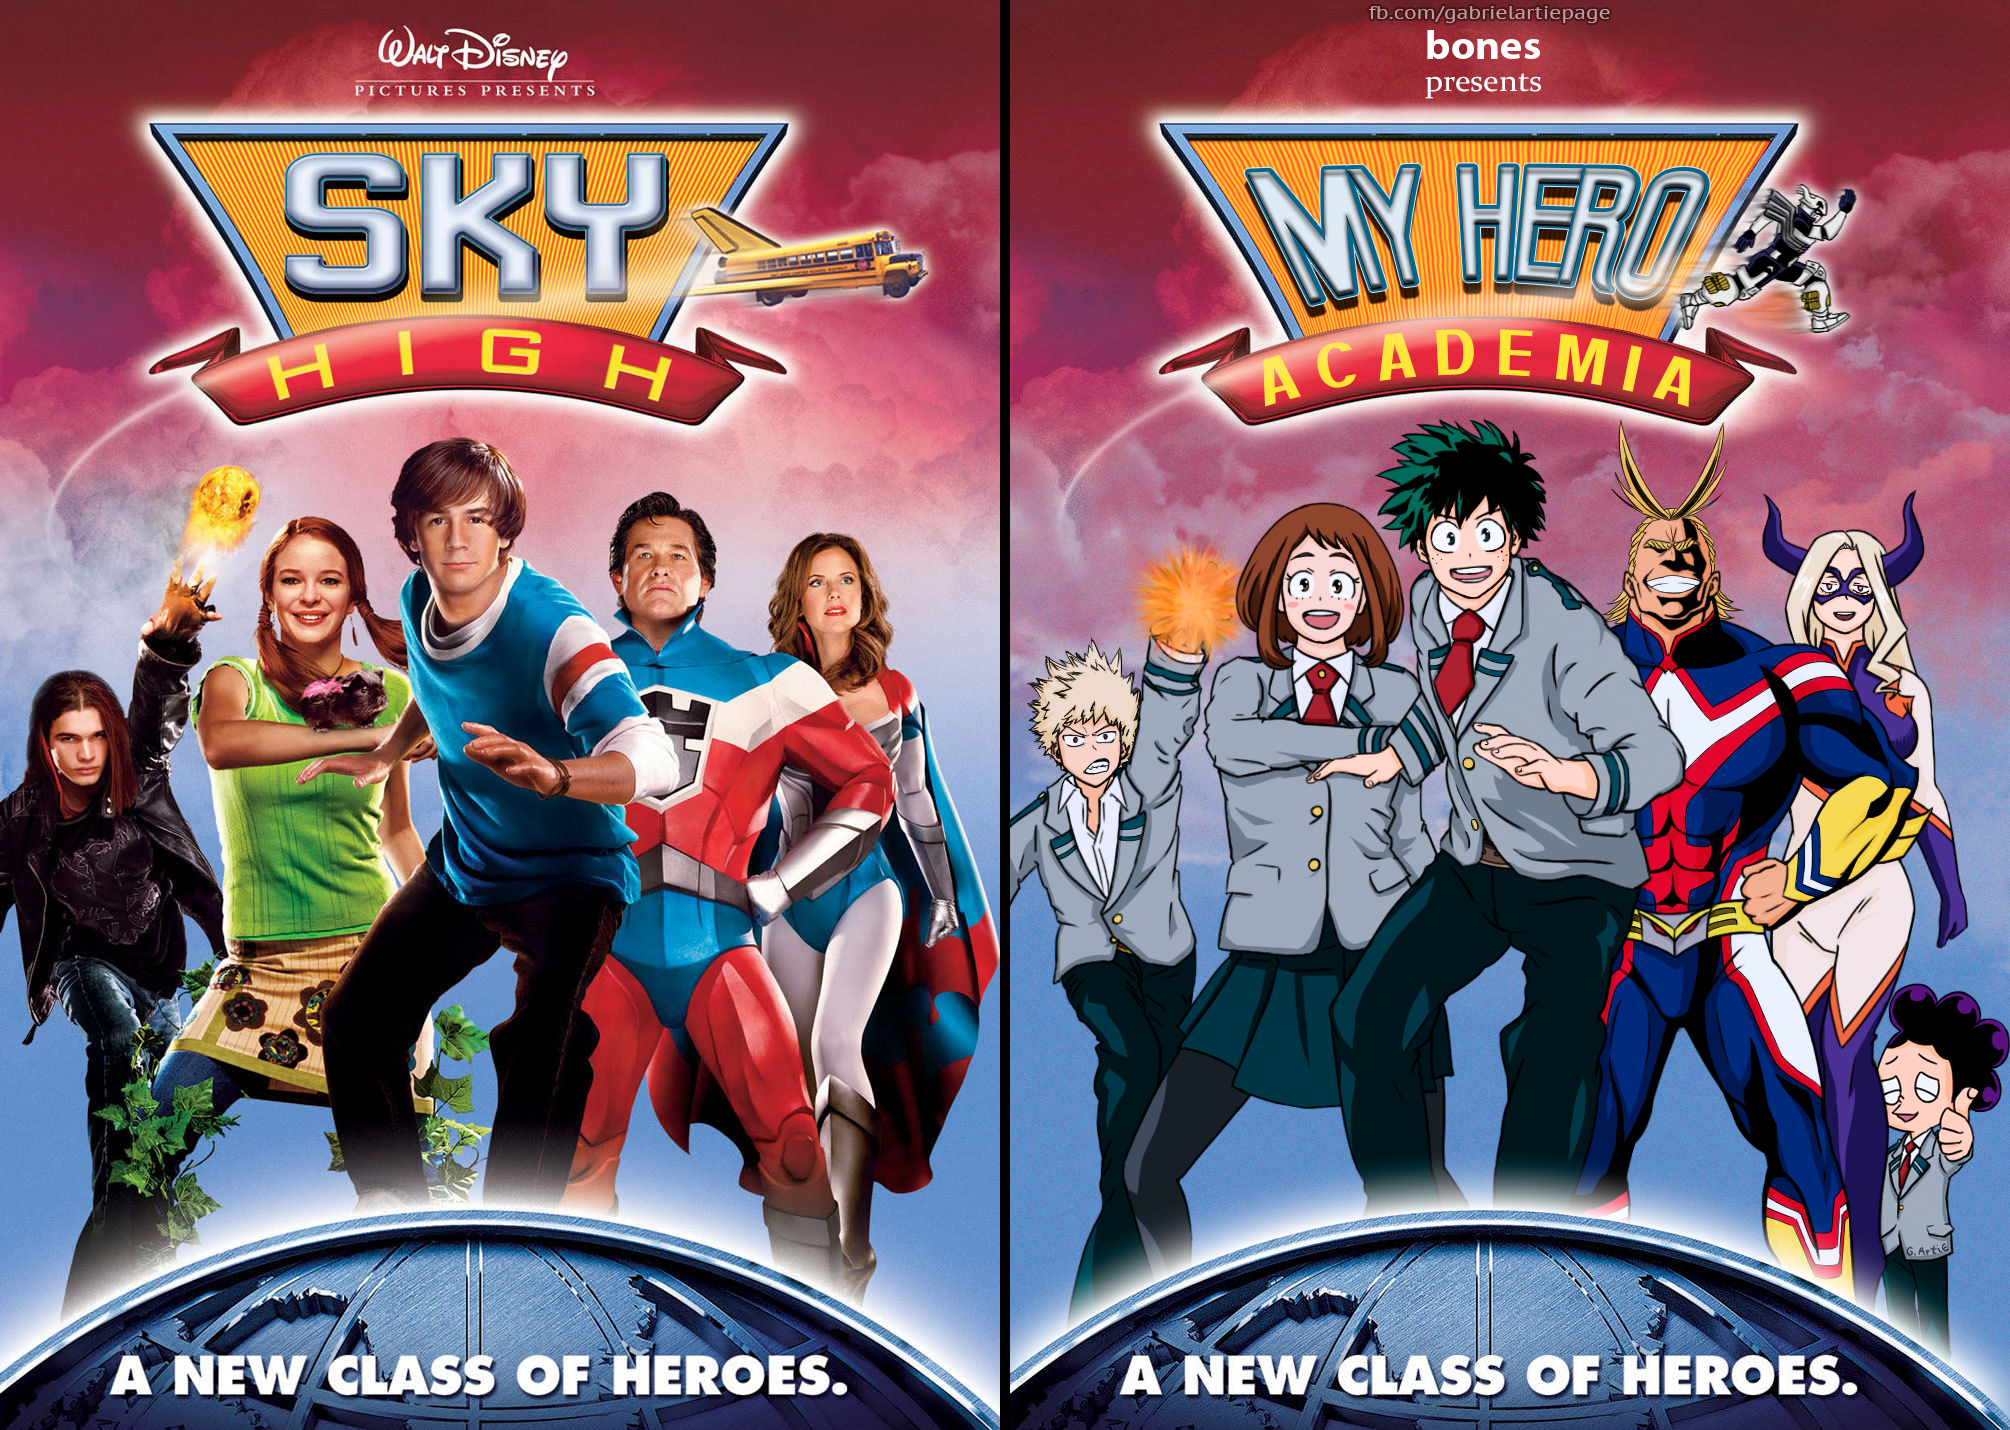 My Hero Academia Cover (Parody of the Sky High DVD Cover) | My Hero ...